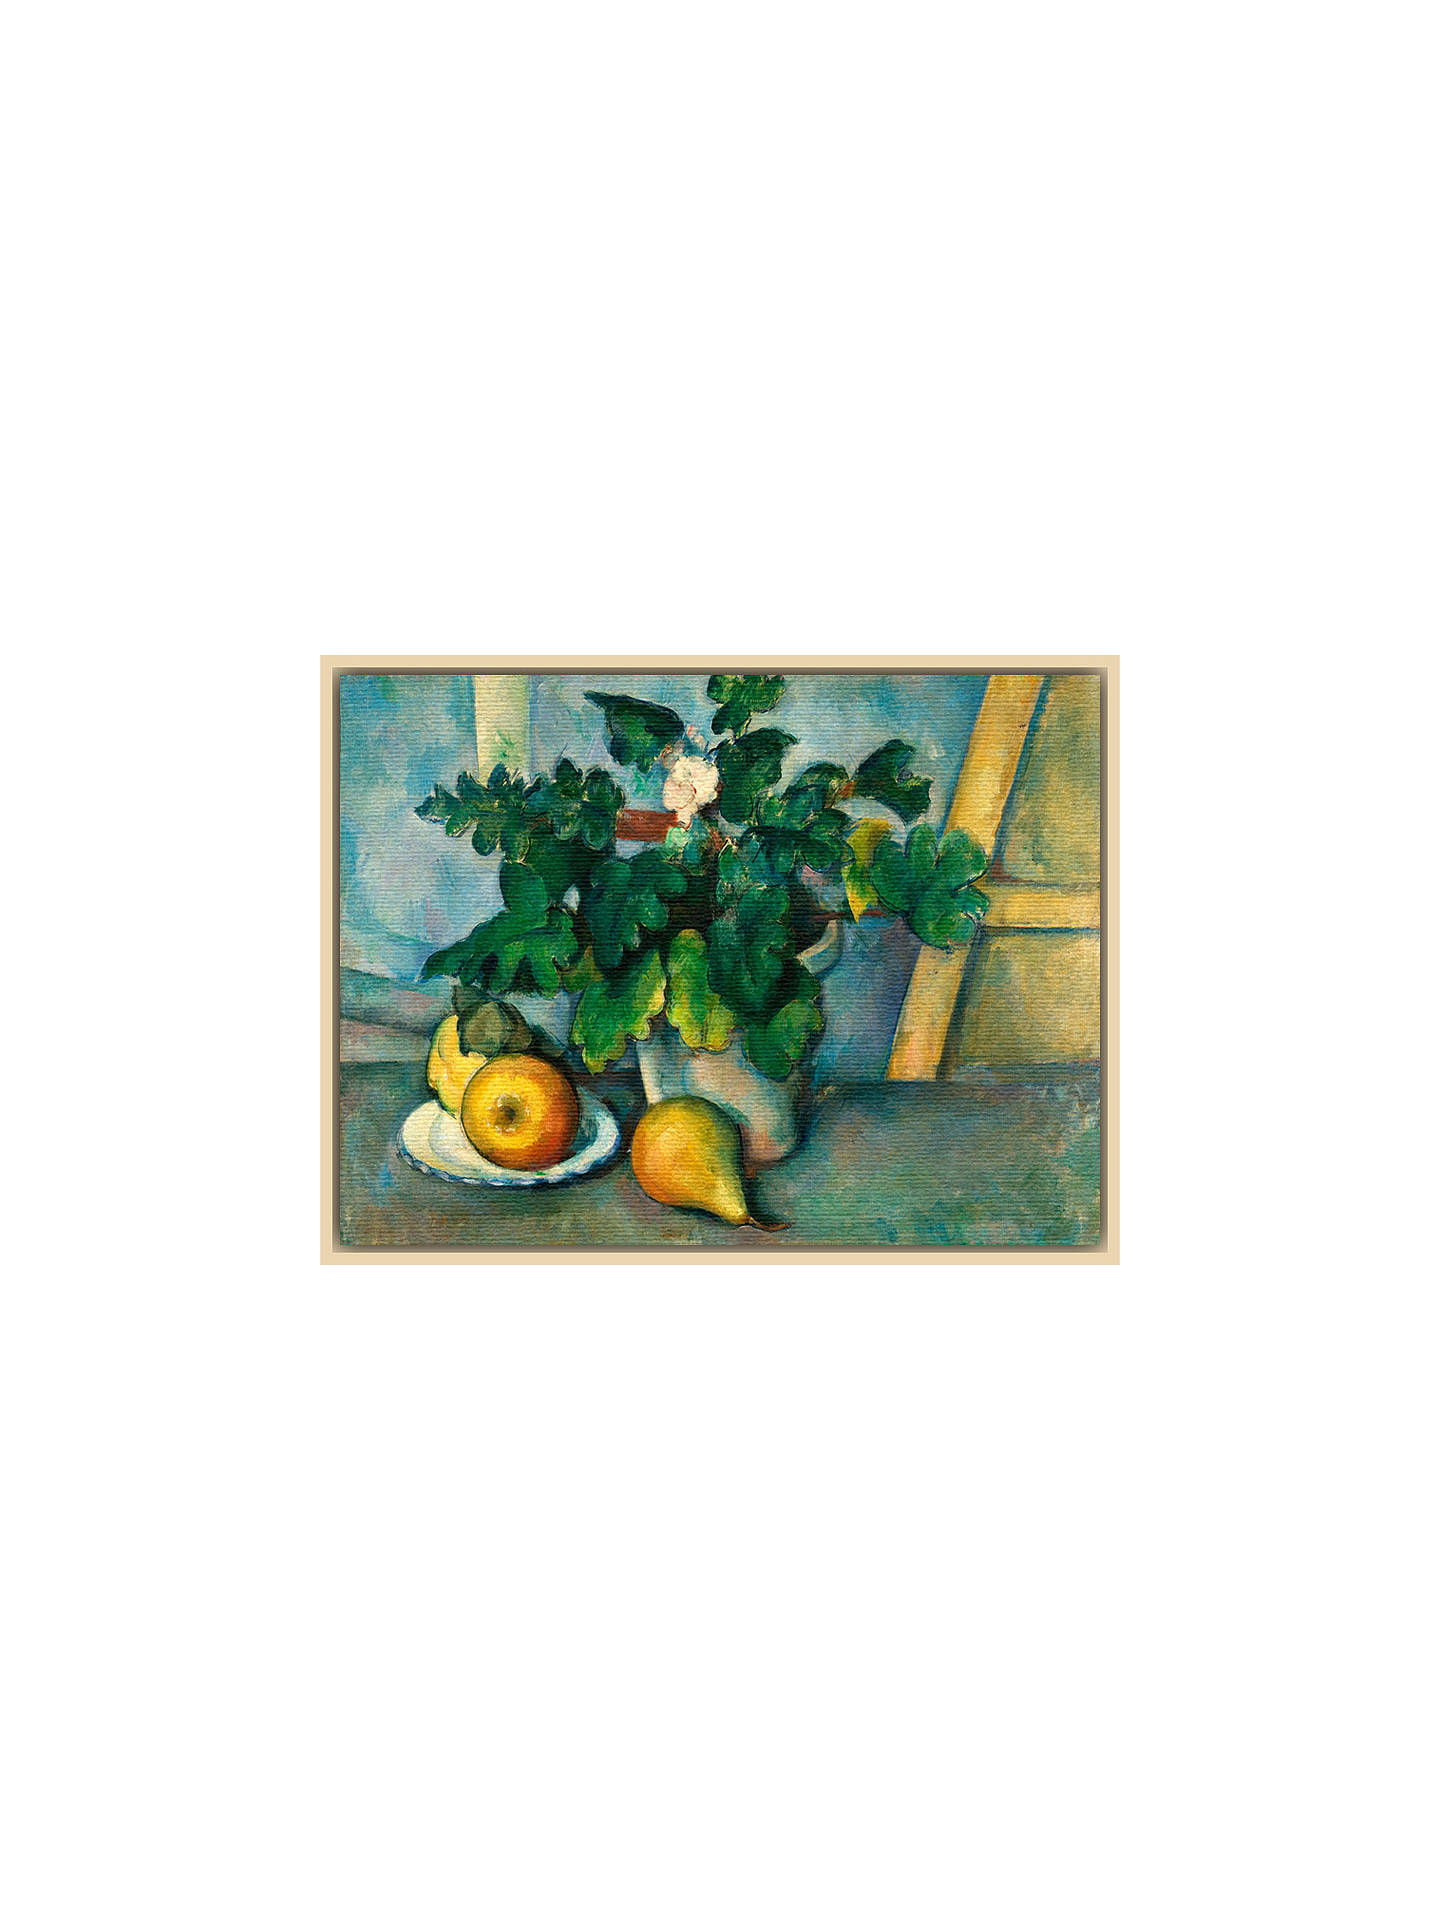 Buy The Courtauld Gallery, Paul Cézanne - Pot of Primroses and Fruit 1888-1890 Print, Natural Ash Framed Canvas, 40 x 50cm Online at johnlewis.com